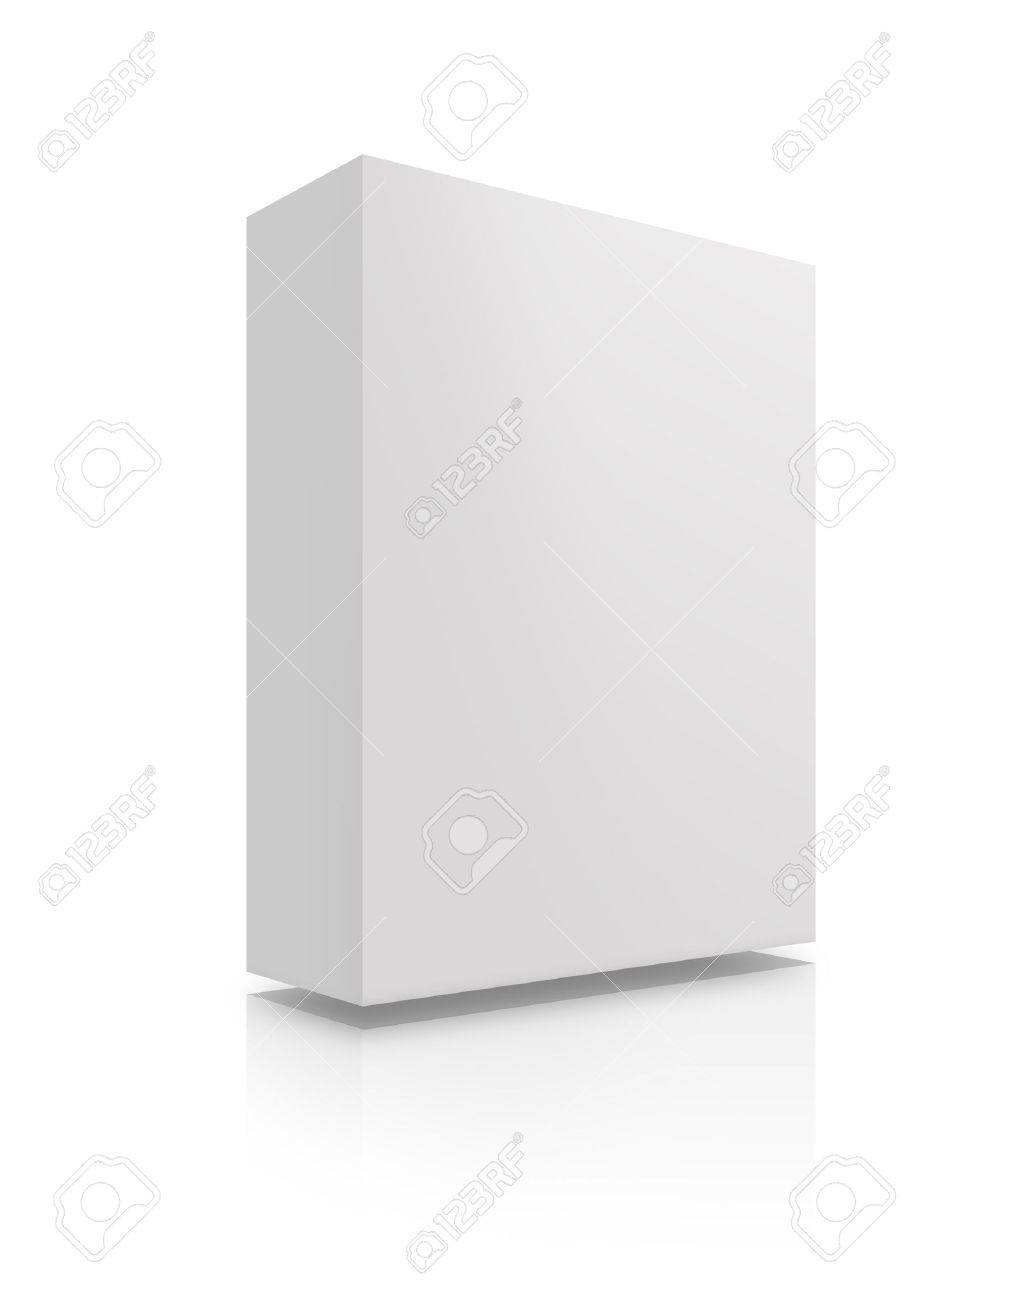 Blank box with reflection and shadows on a white background. Stock Photo - 8418601